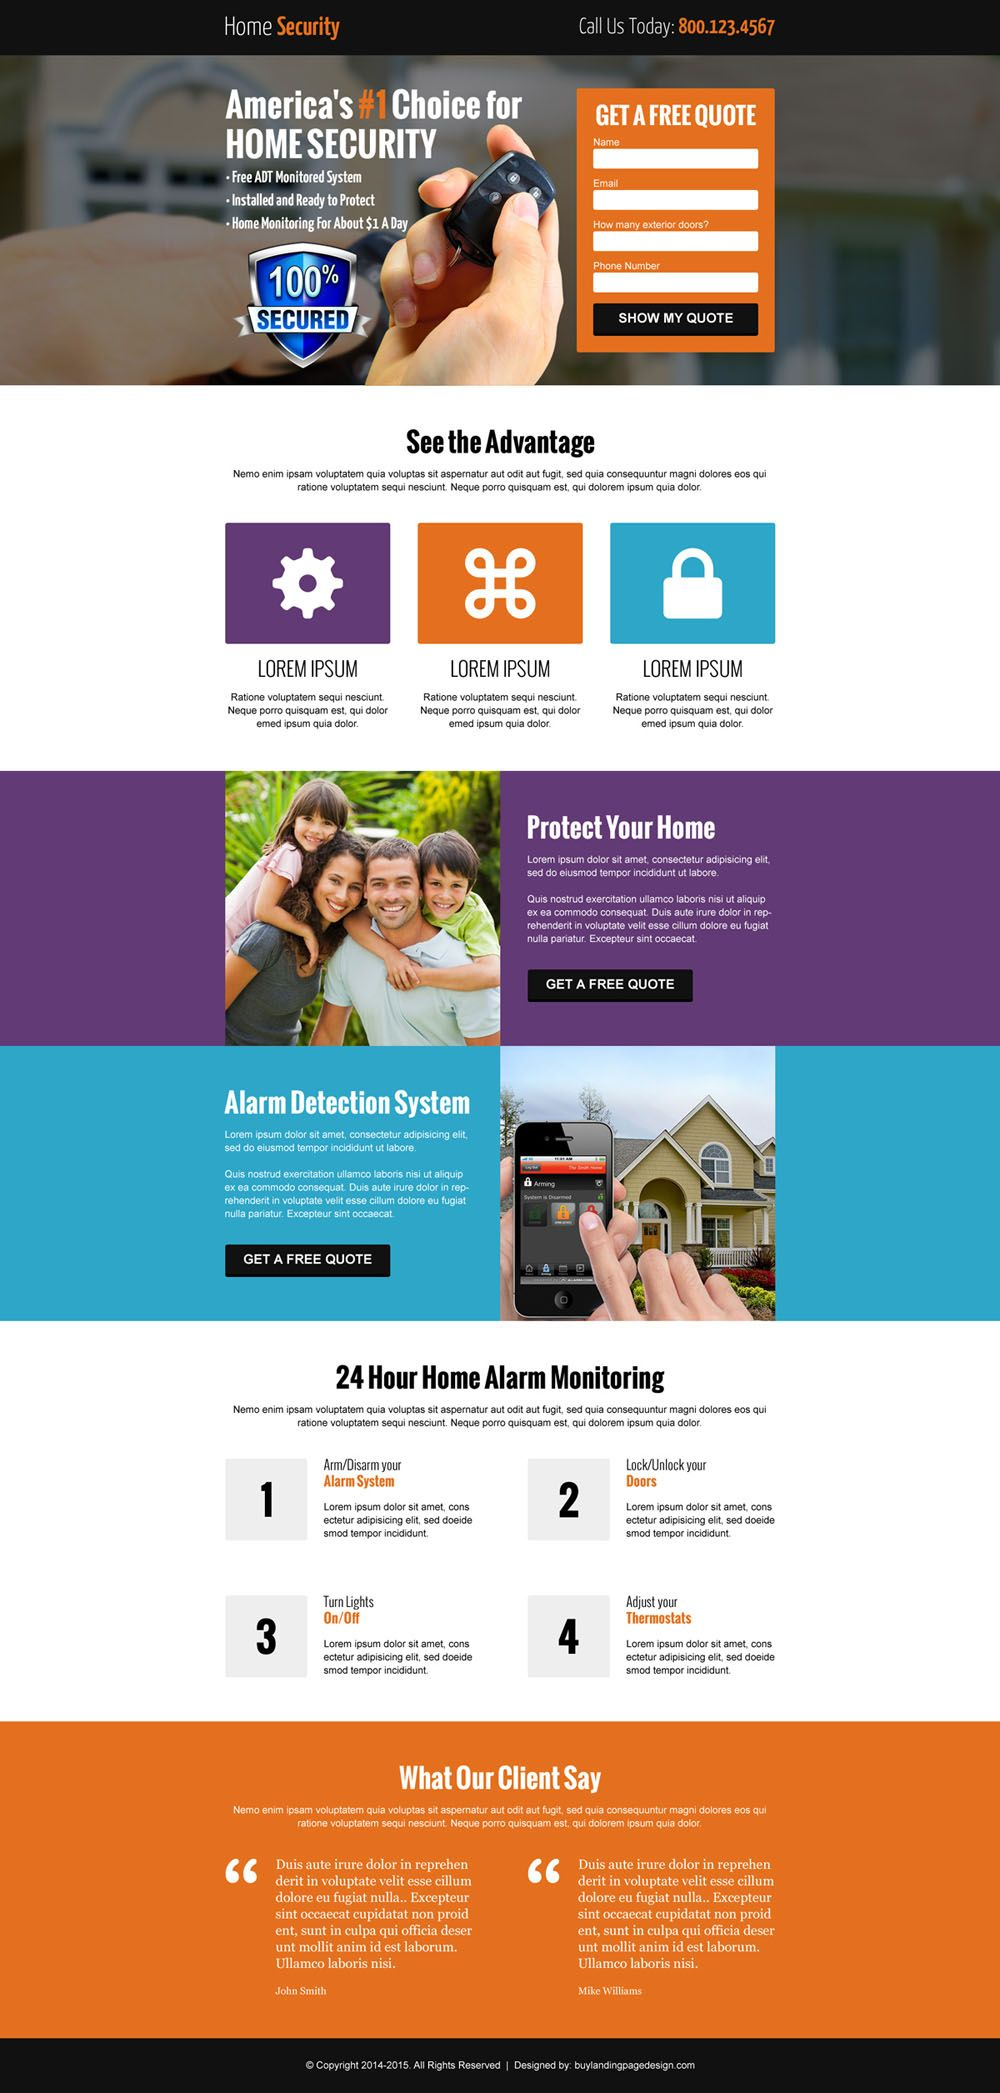 Home Security Free Quote Lead Capture Landing Page